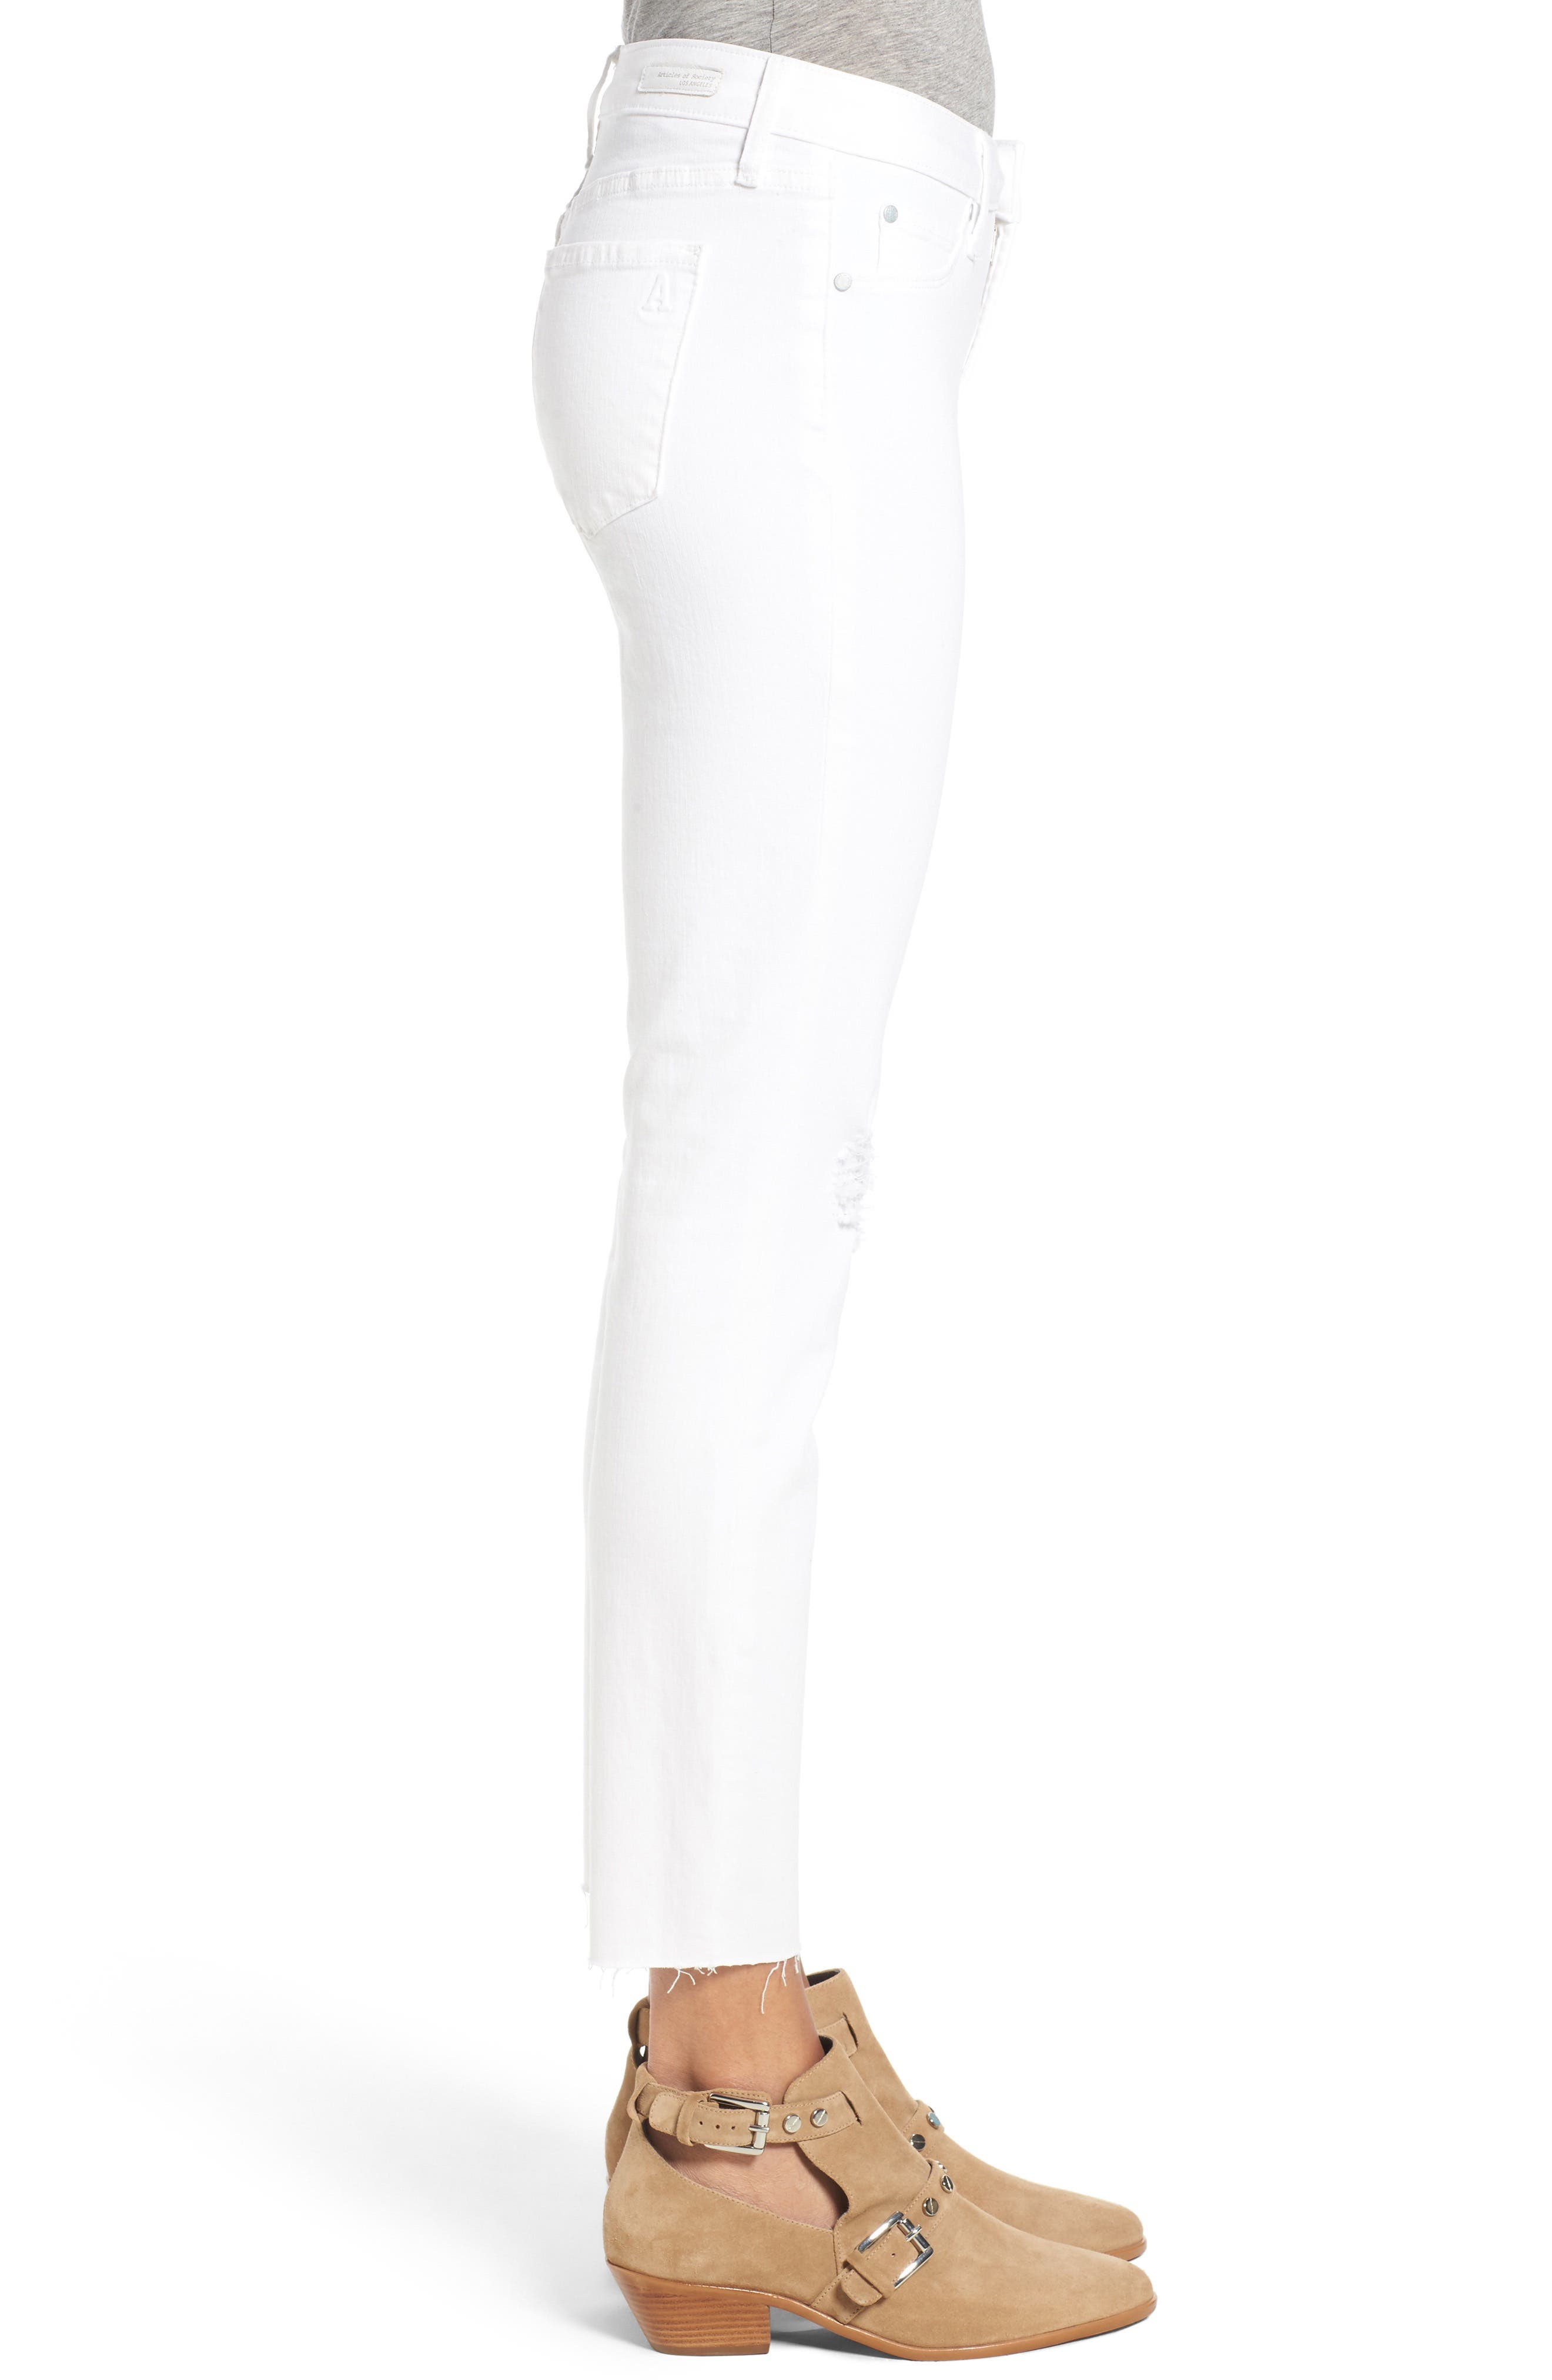 Carly Skinny Crop Jeans,                             Alternate thumbnail 3, color,                             110